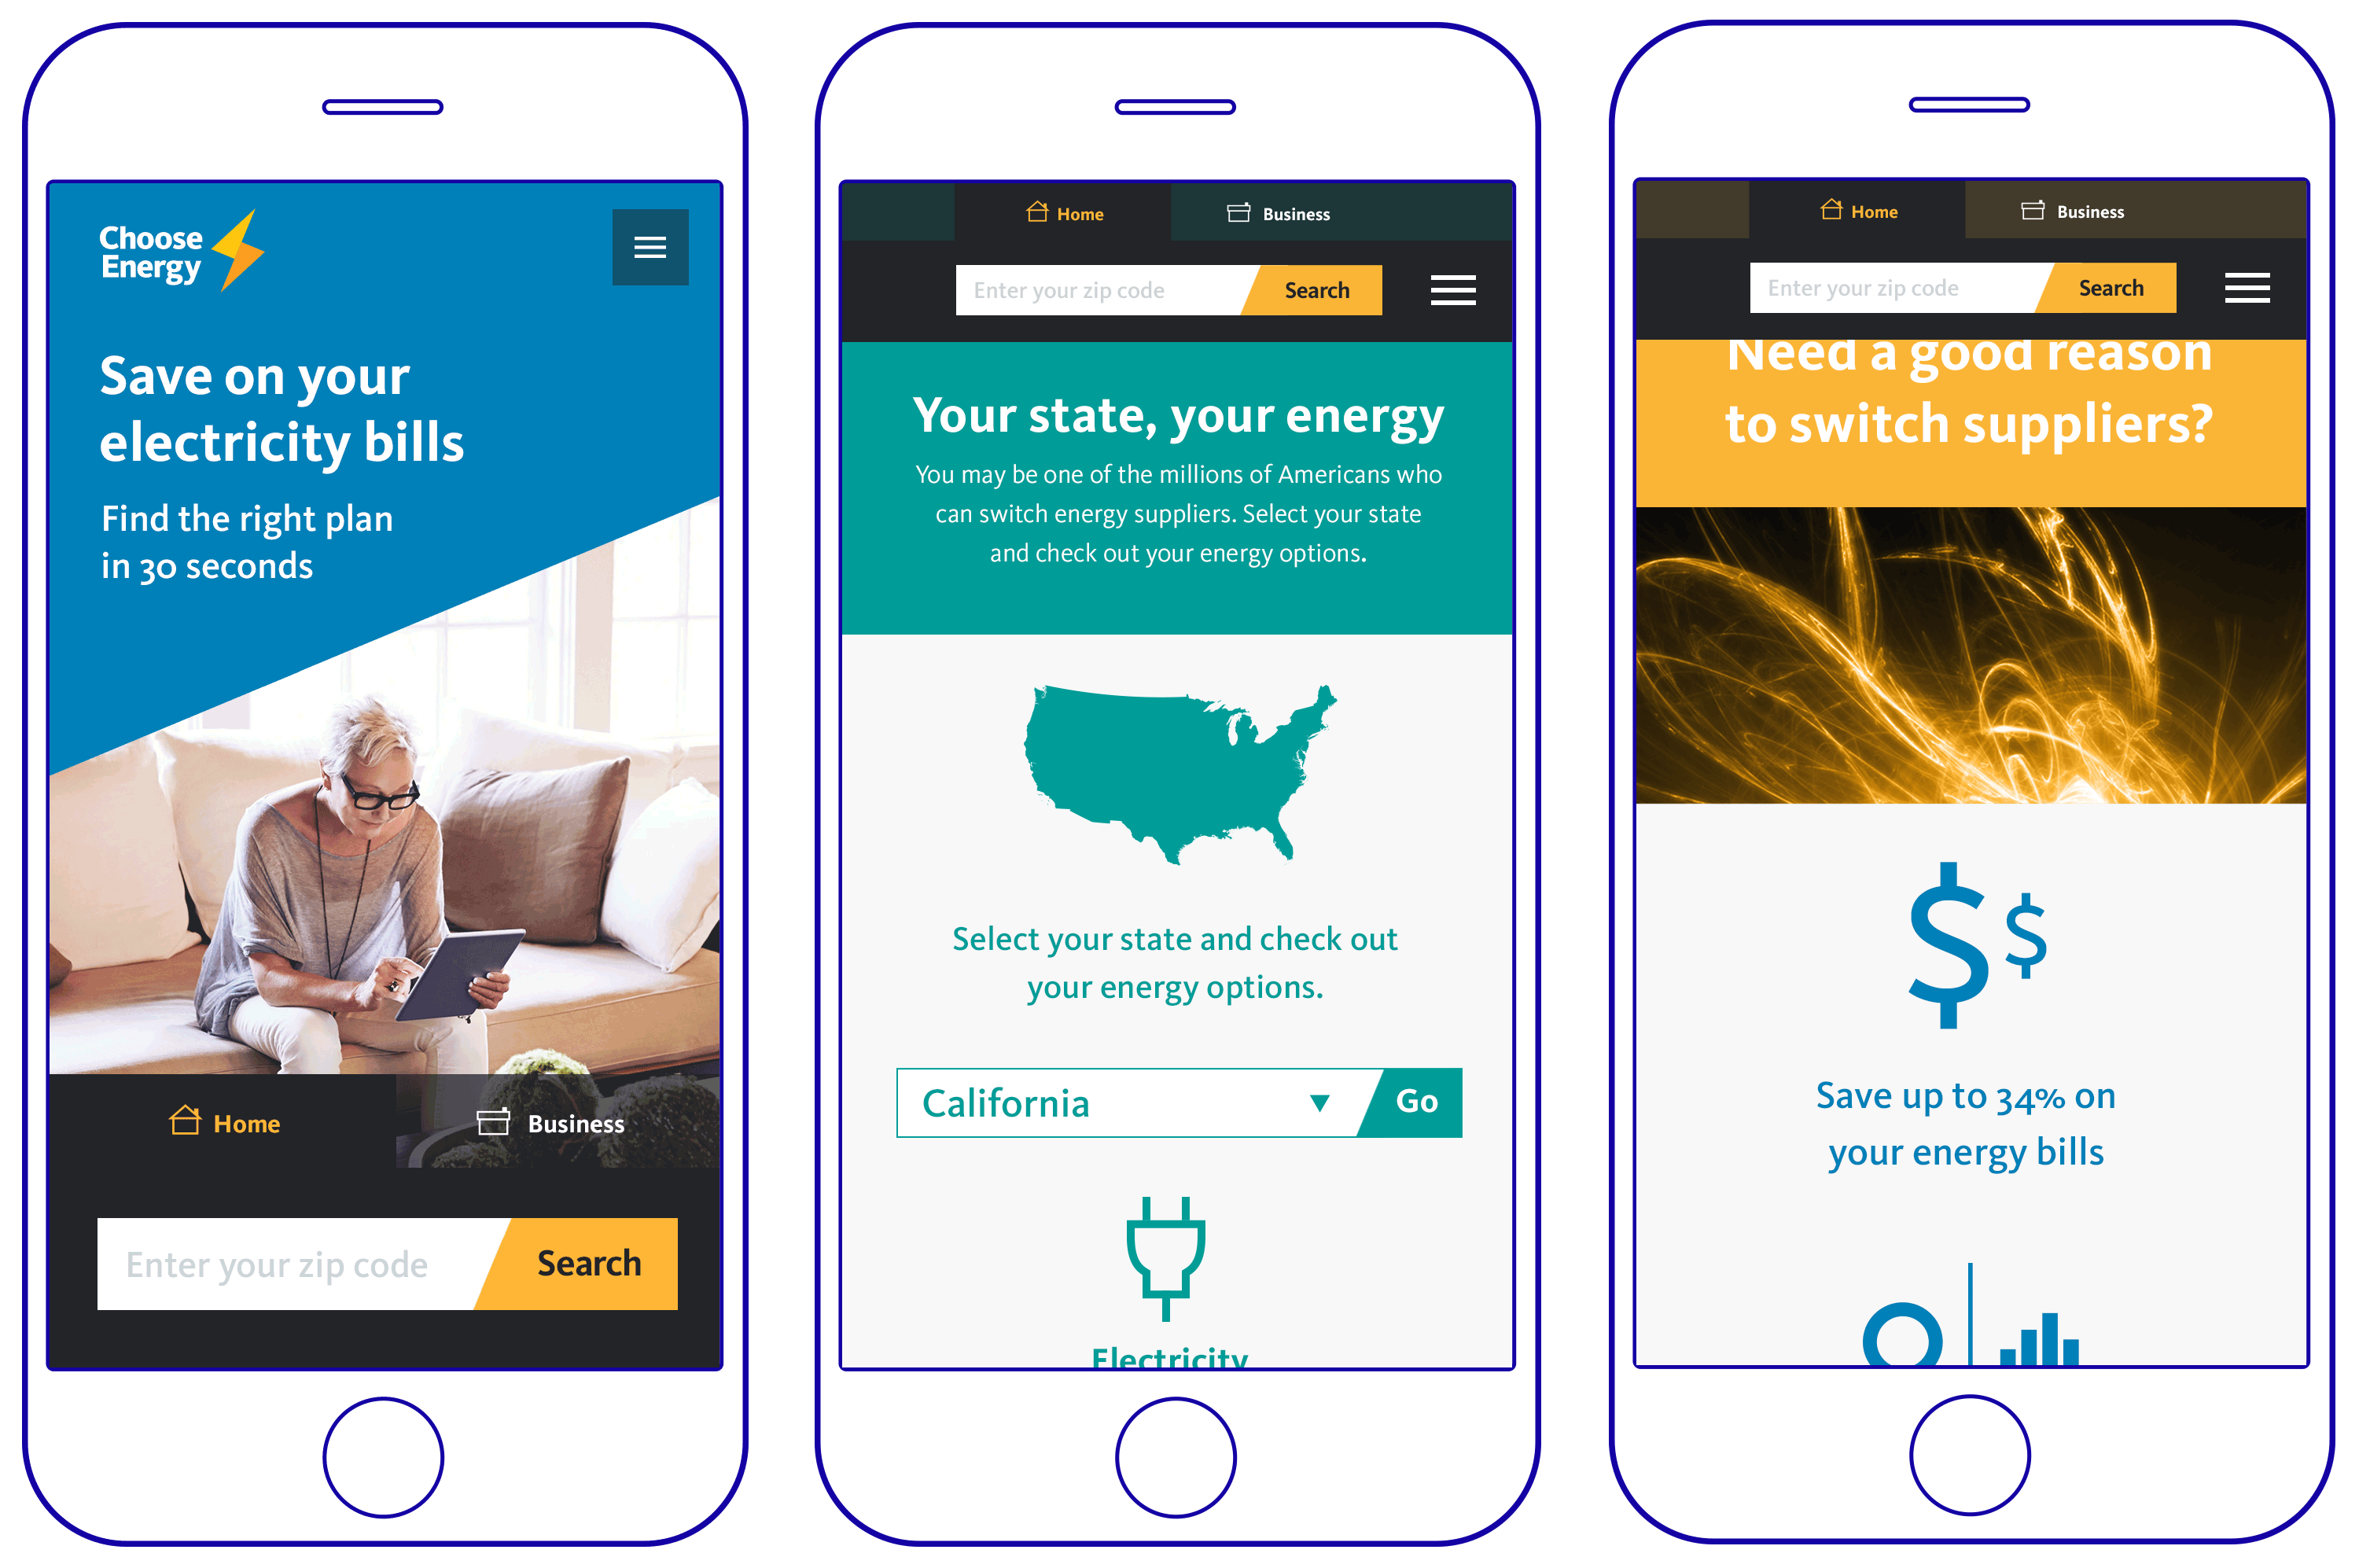 Choose Energy - mobile website